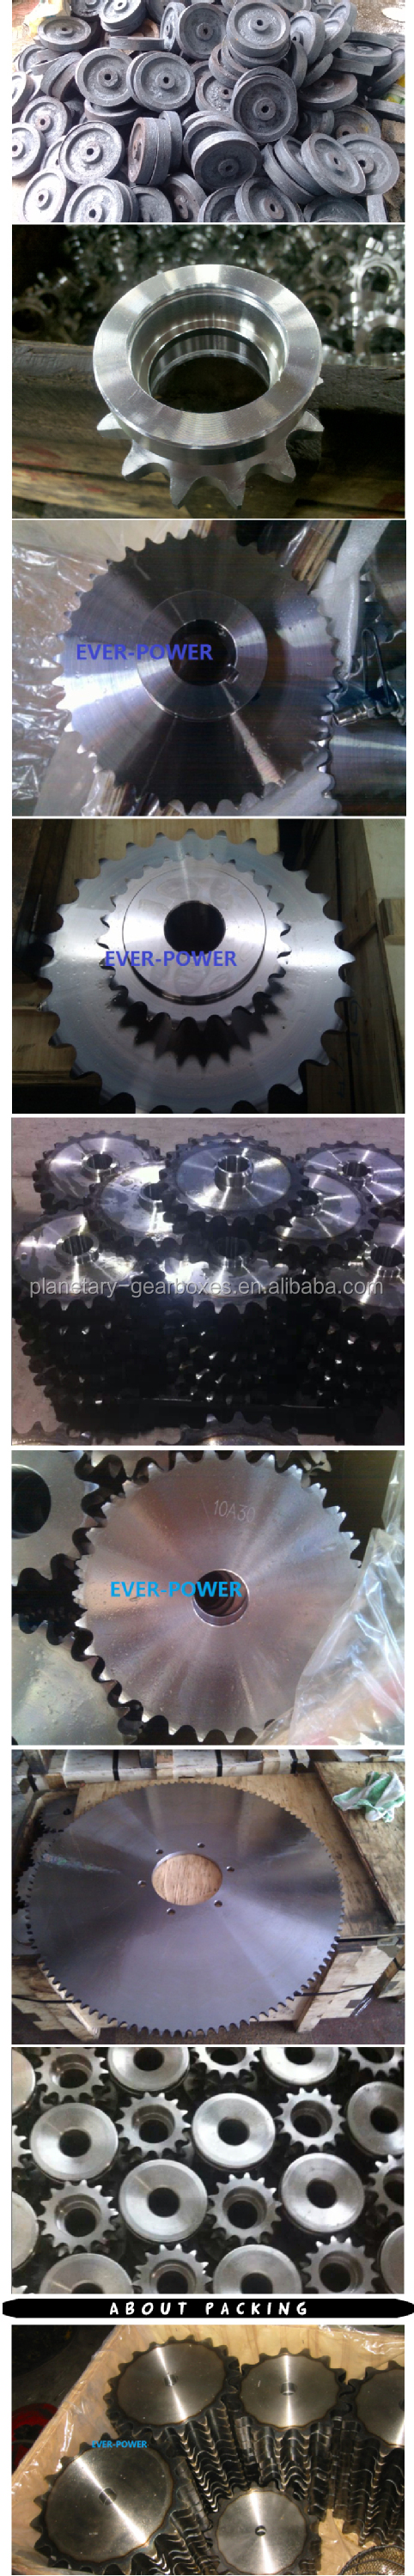 sprocket High quality chain/sprocket